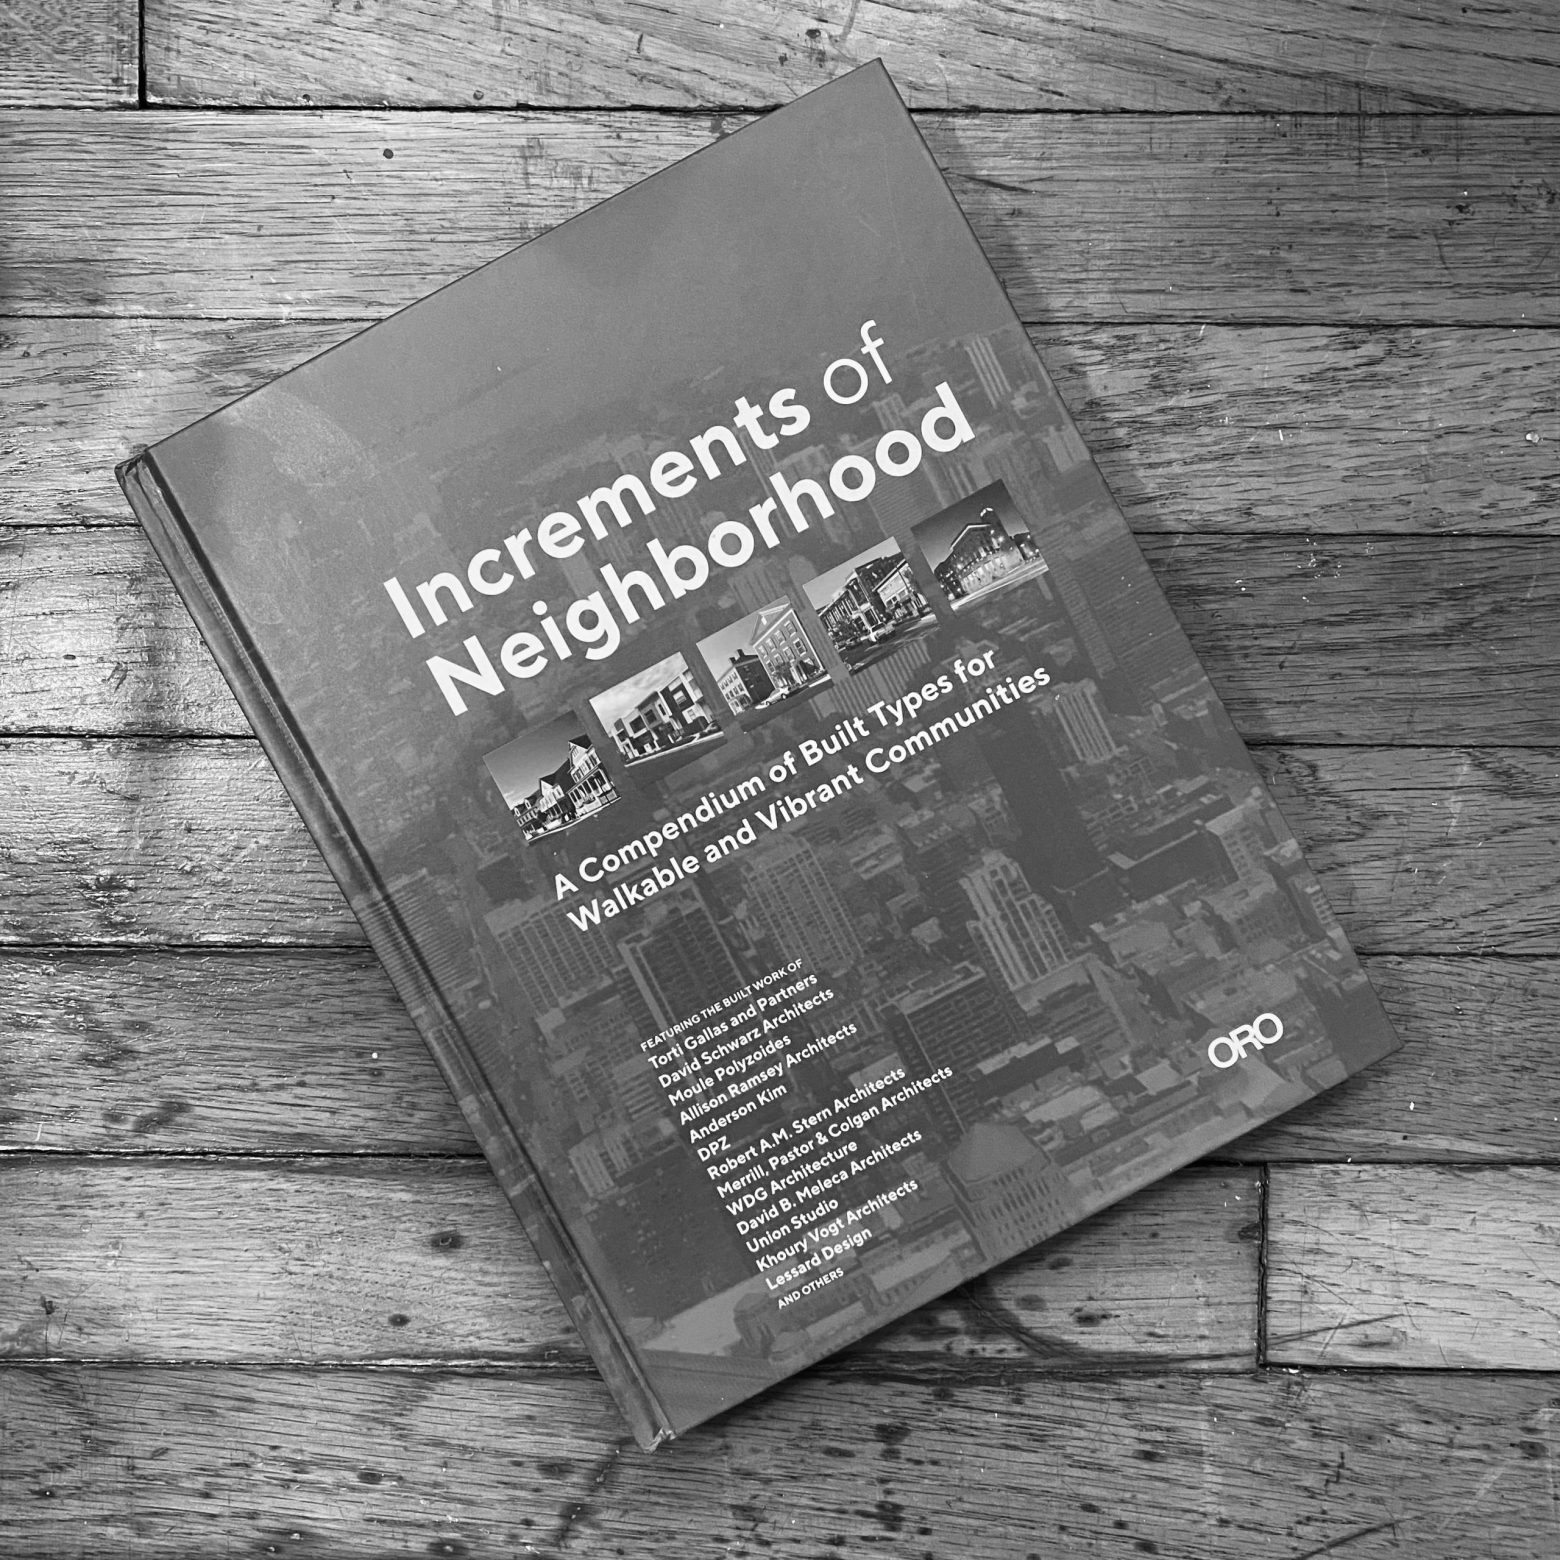 Increments of Neighborhood by Brian O'Looney